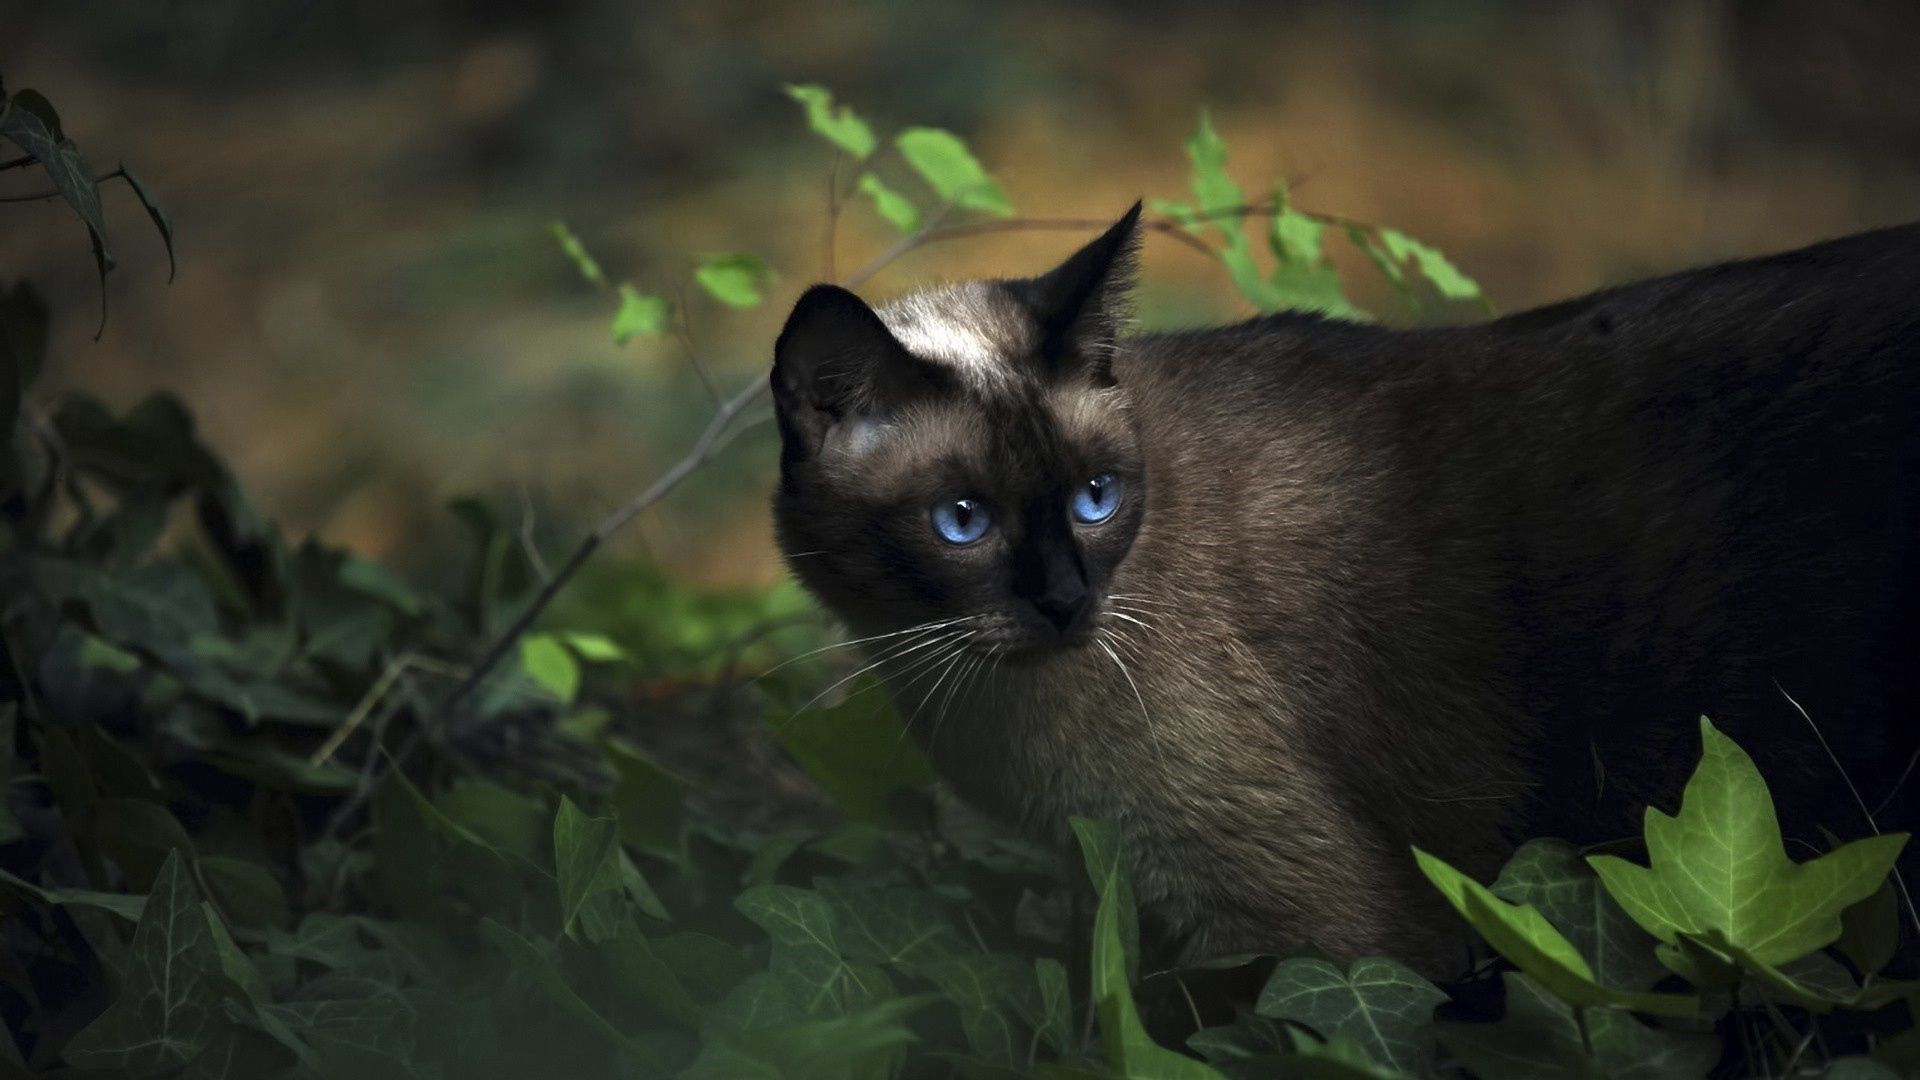 99967 download wallpaper Animals, Cat, Siamese, Grass, Blue Eyed, Blue-Eyed screensavers and pictures for free